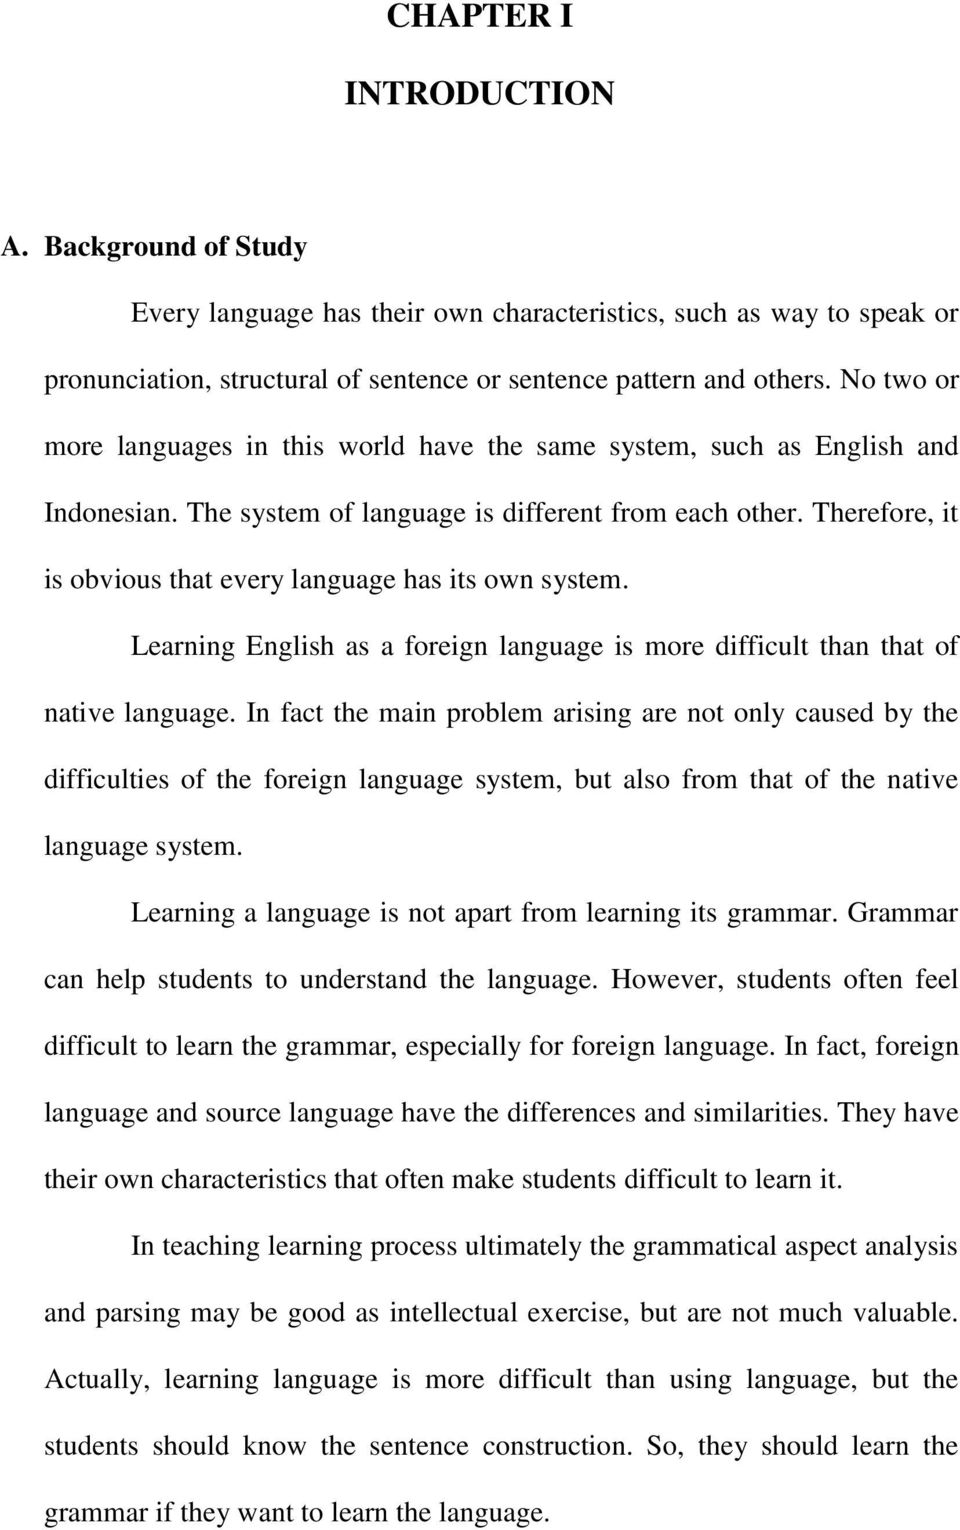 Therefore, it is obvious that every language has its own system. Learning English as a foreign language is more difficult than that of native language.